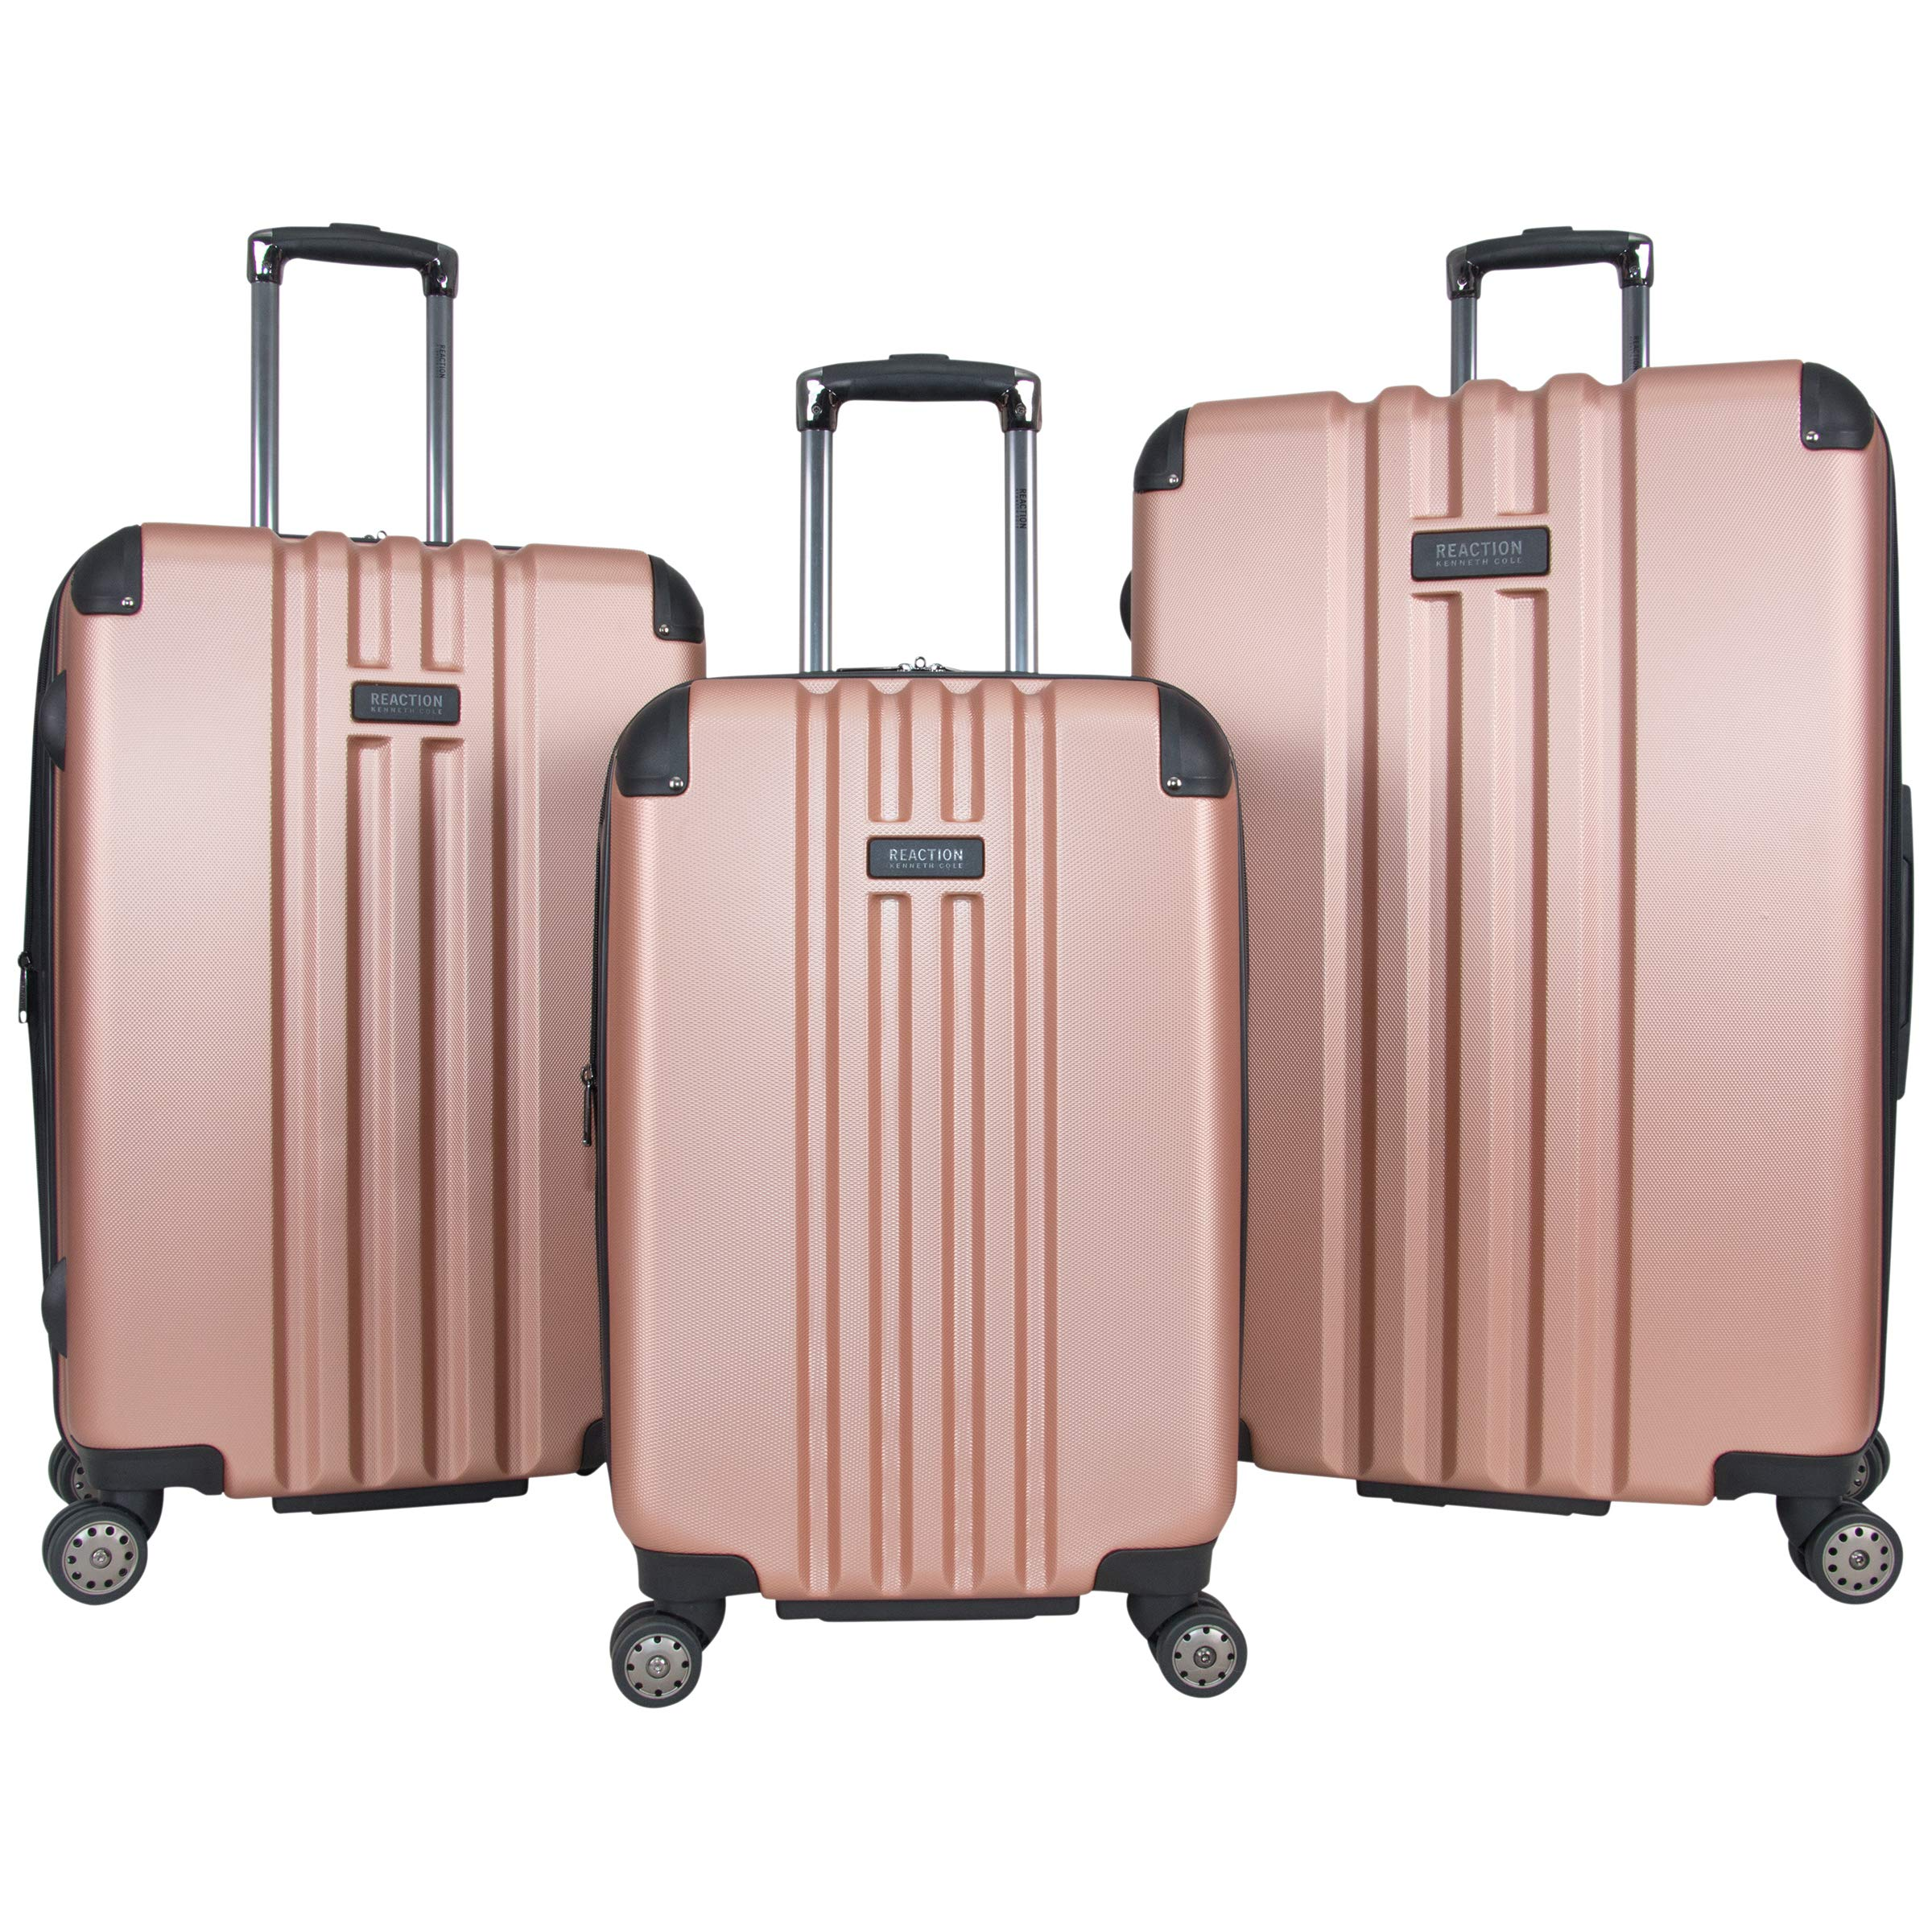 Kenneth Cole Reaction Reverb Hardside 8-Wheel 3-Piece Luggage Set: 20'' Carry-on, 25'', 29'', Rose Gold